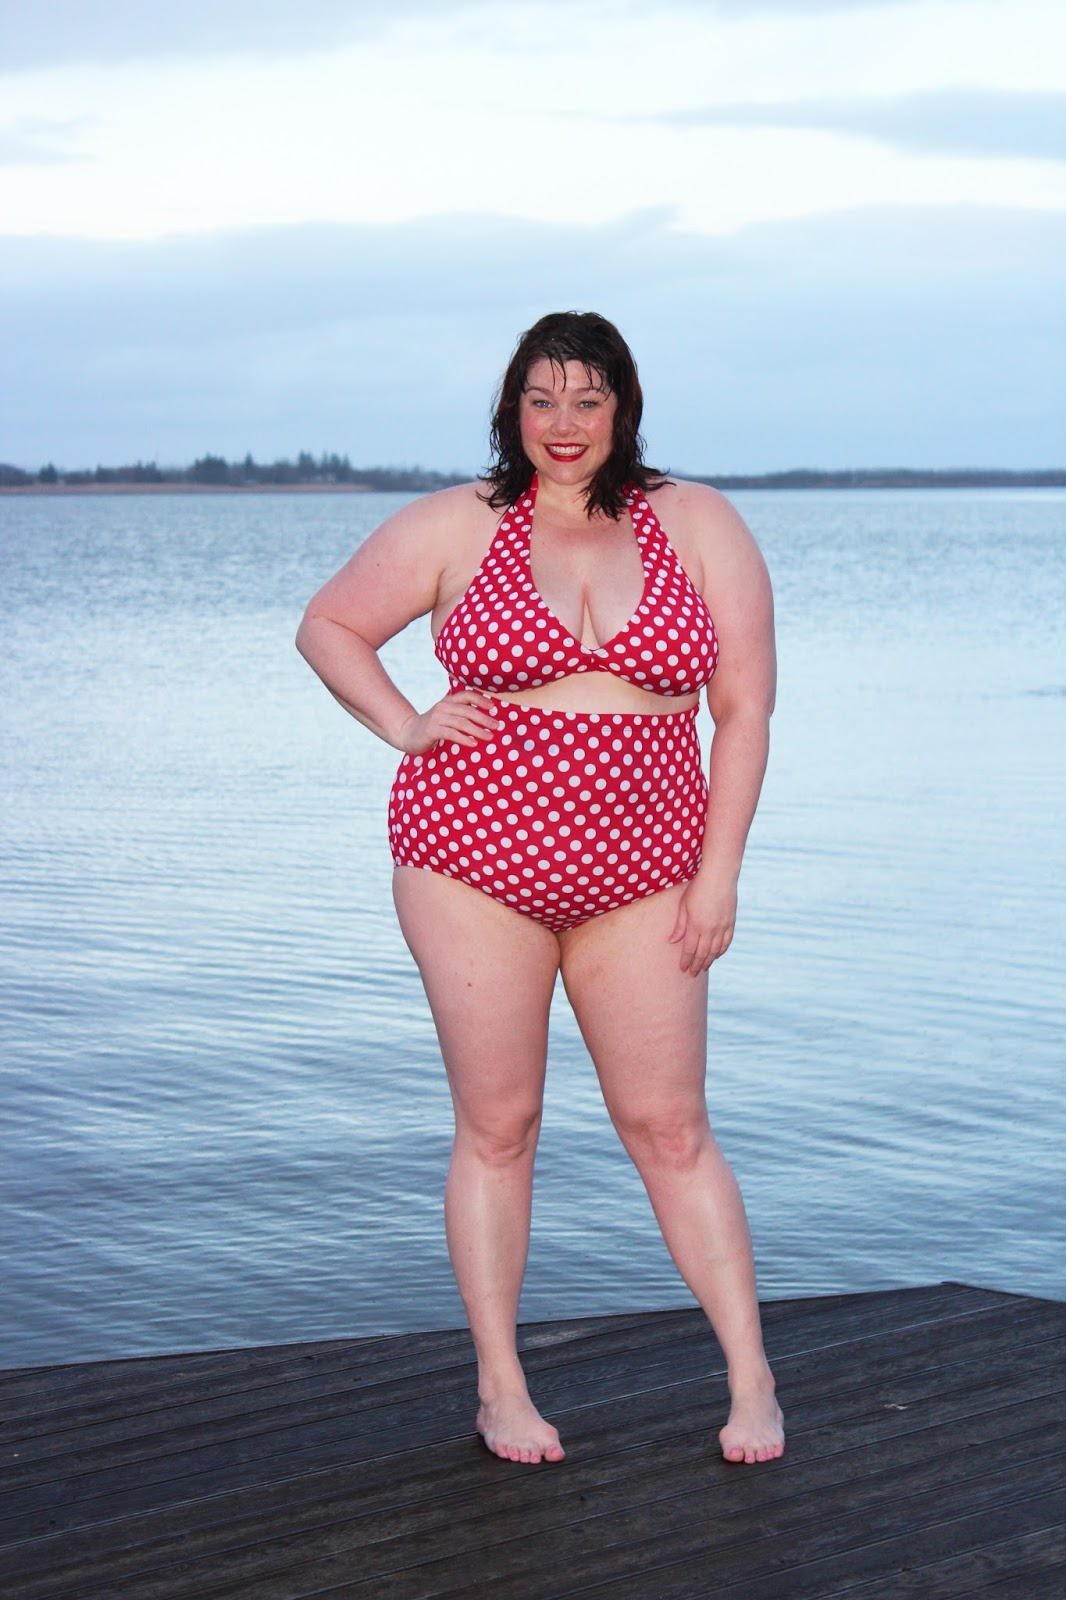 Plus Size Blogger Amber in a Red Polka Dot Bikini, fullbeauty.com, Swim Sexy, Swimsuits For All, Fatkini